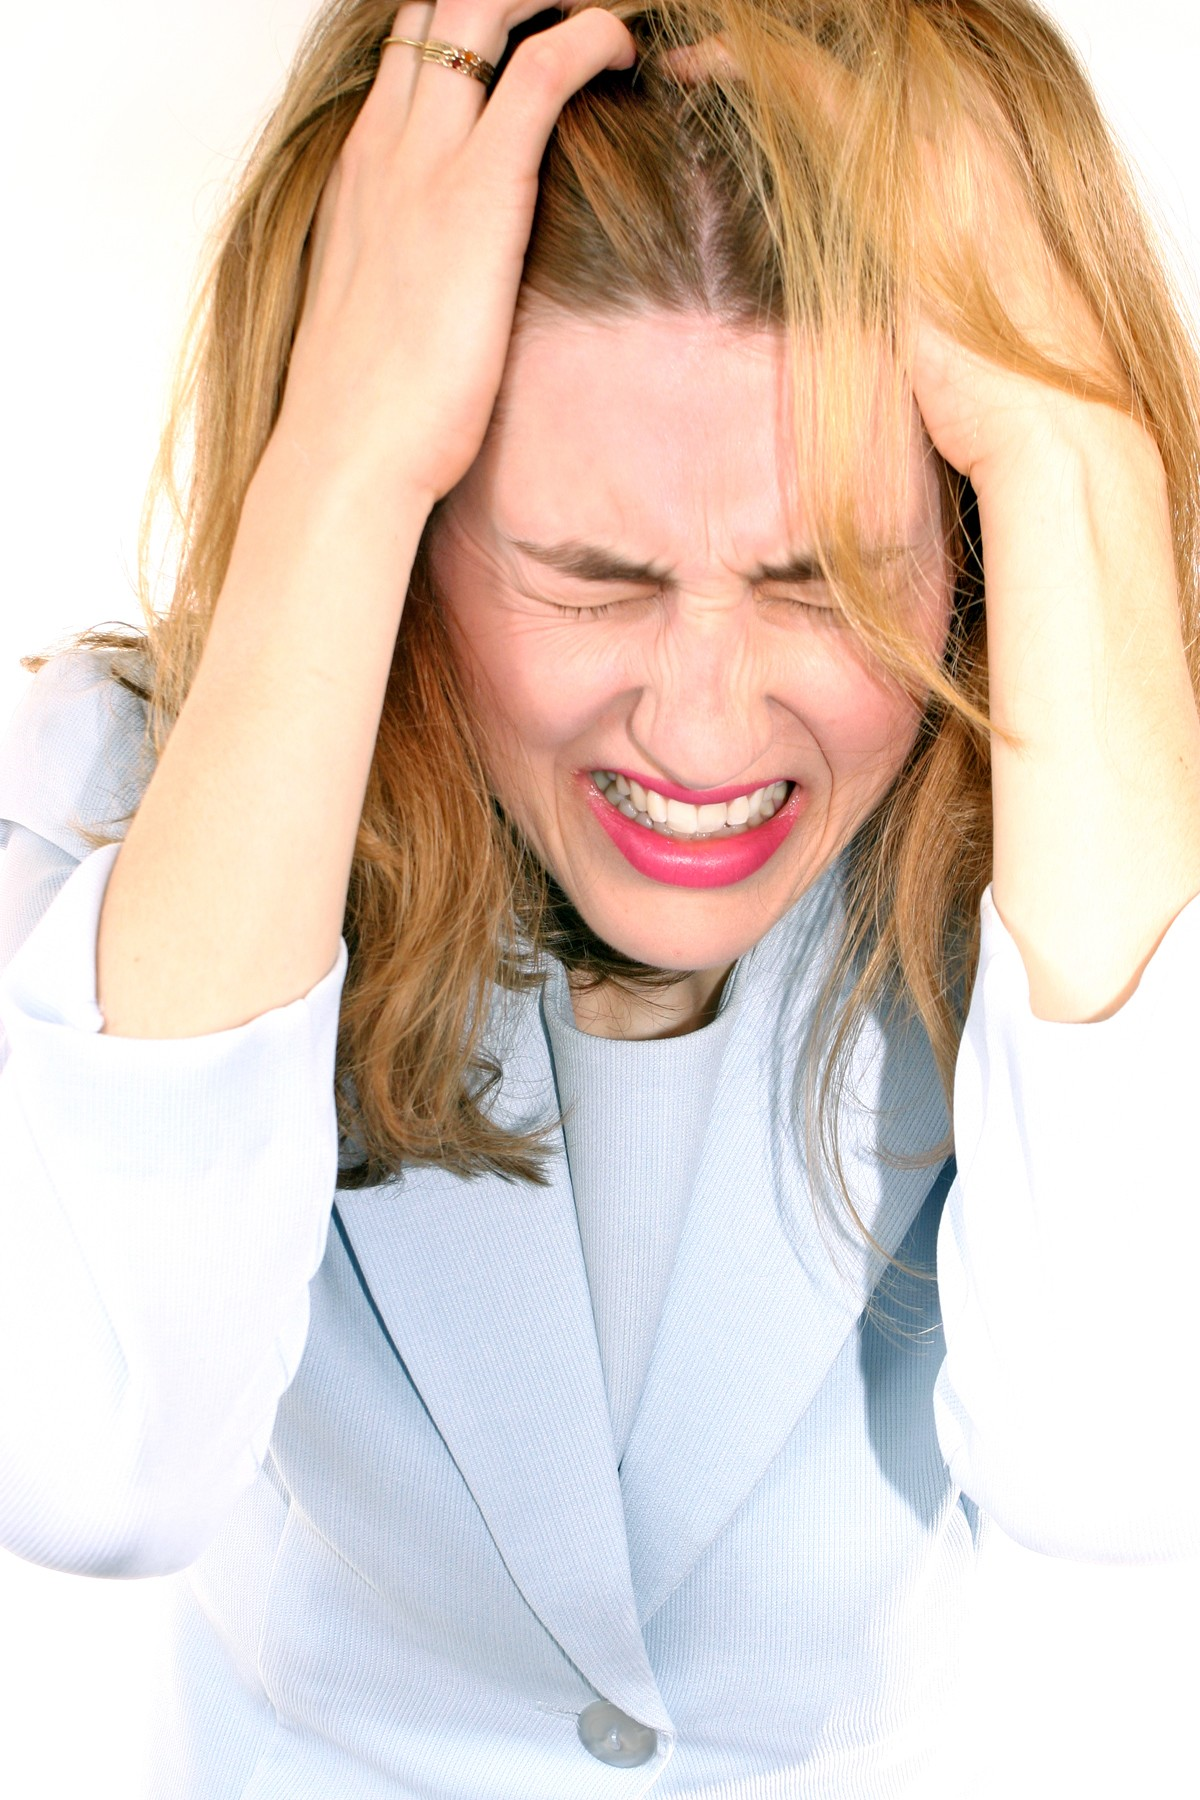 42-magnesium-and-stress-Stressed-young-woman1